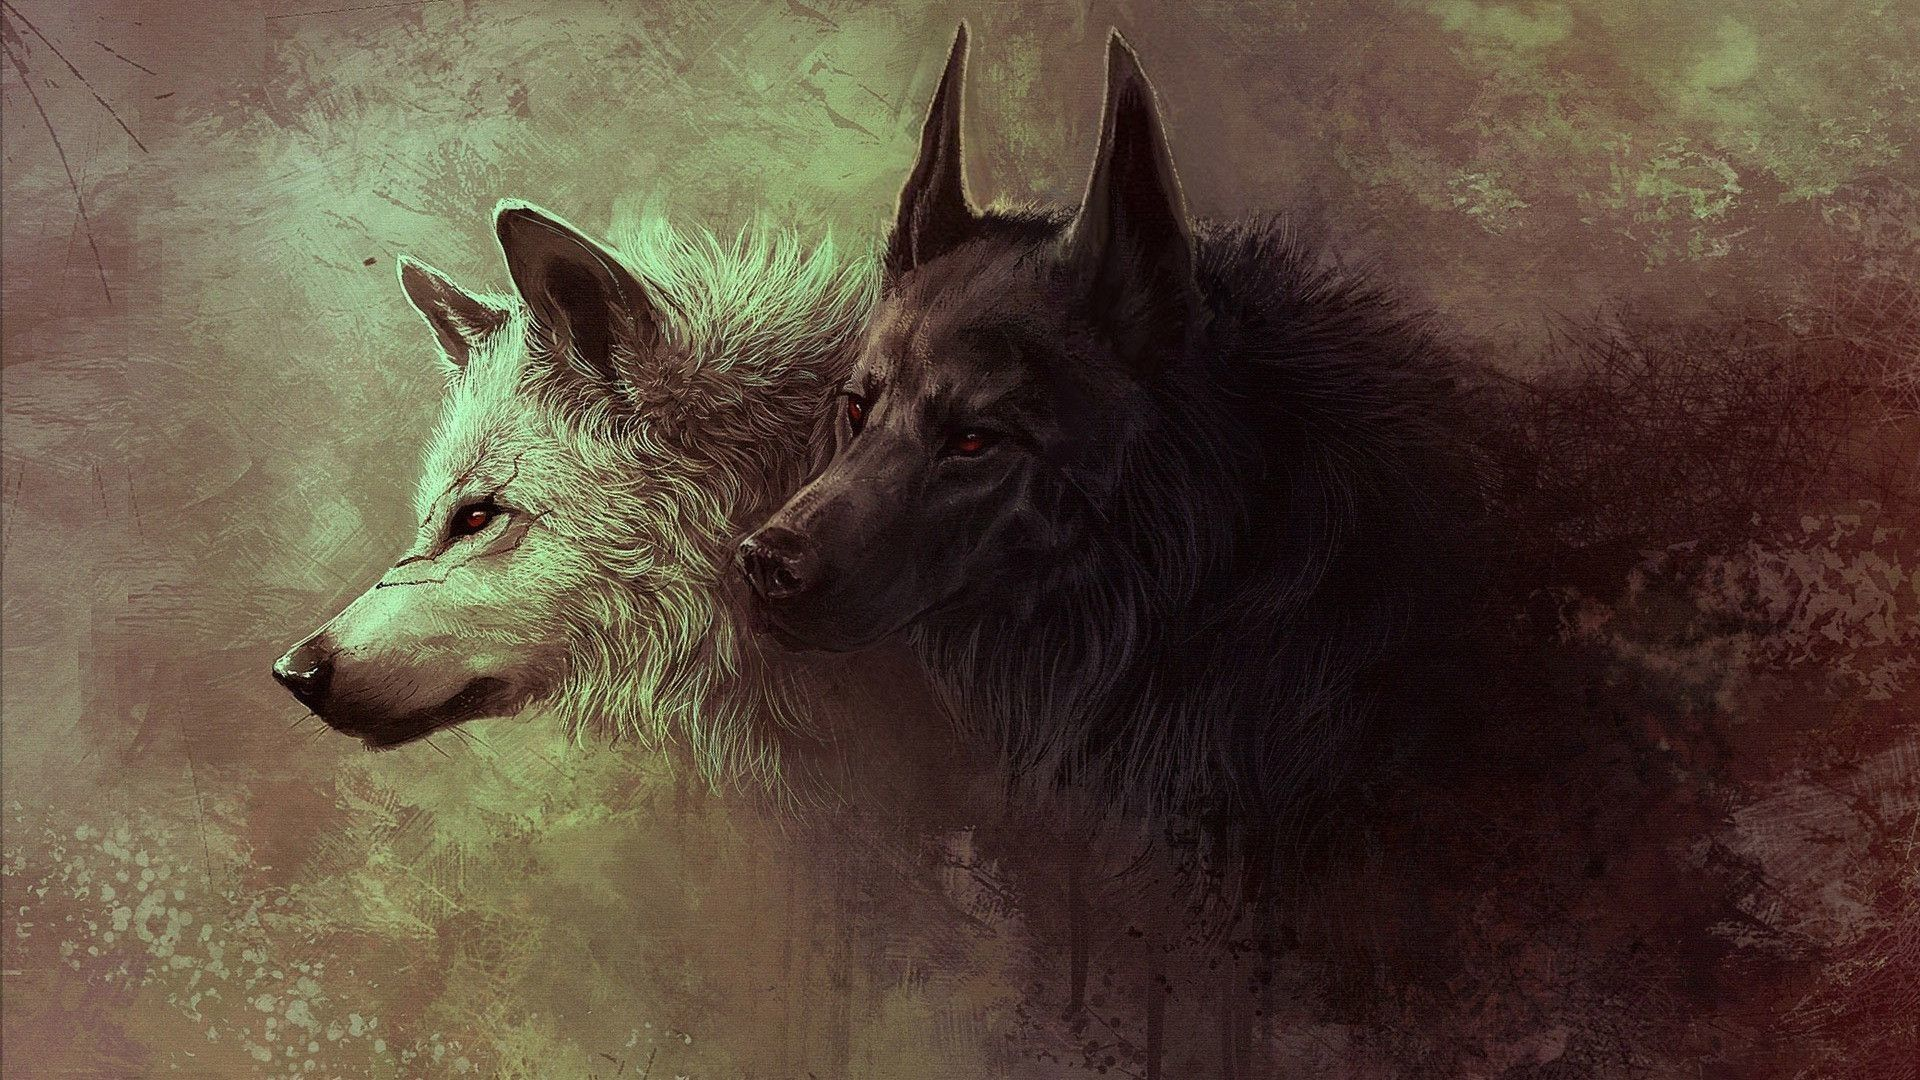 Wolves Wallpaper In 2020 Wolf Wallpaper Wolf Painting Animal Wallpaper